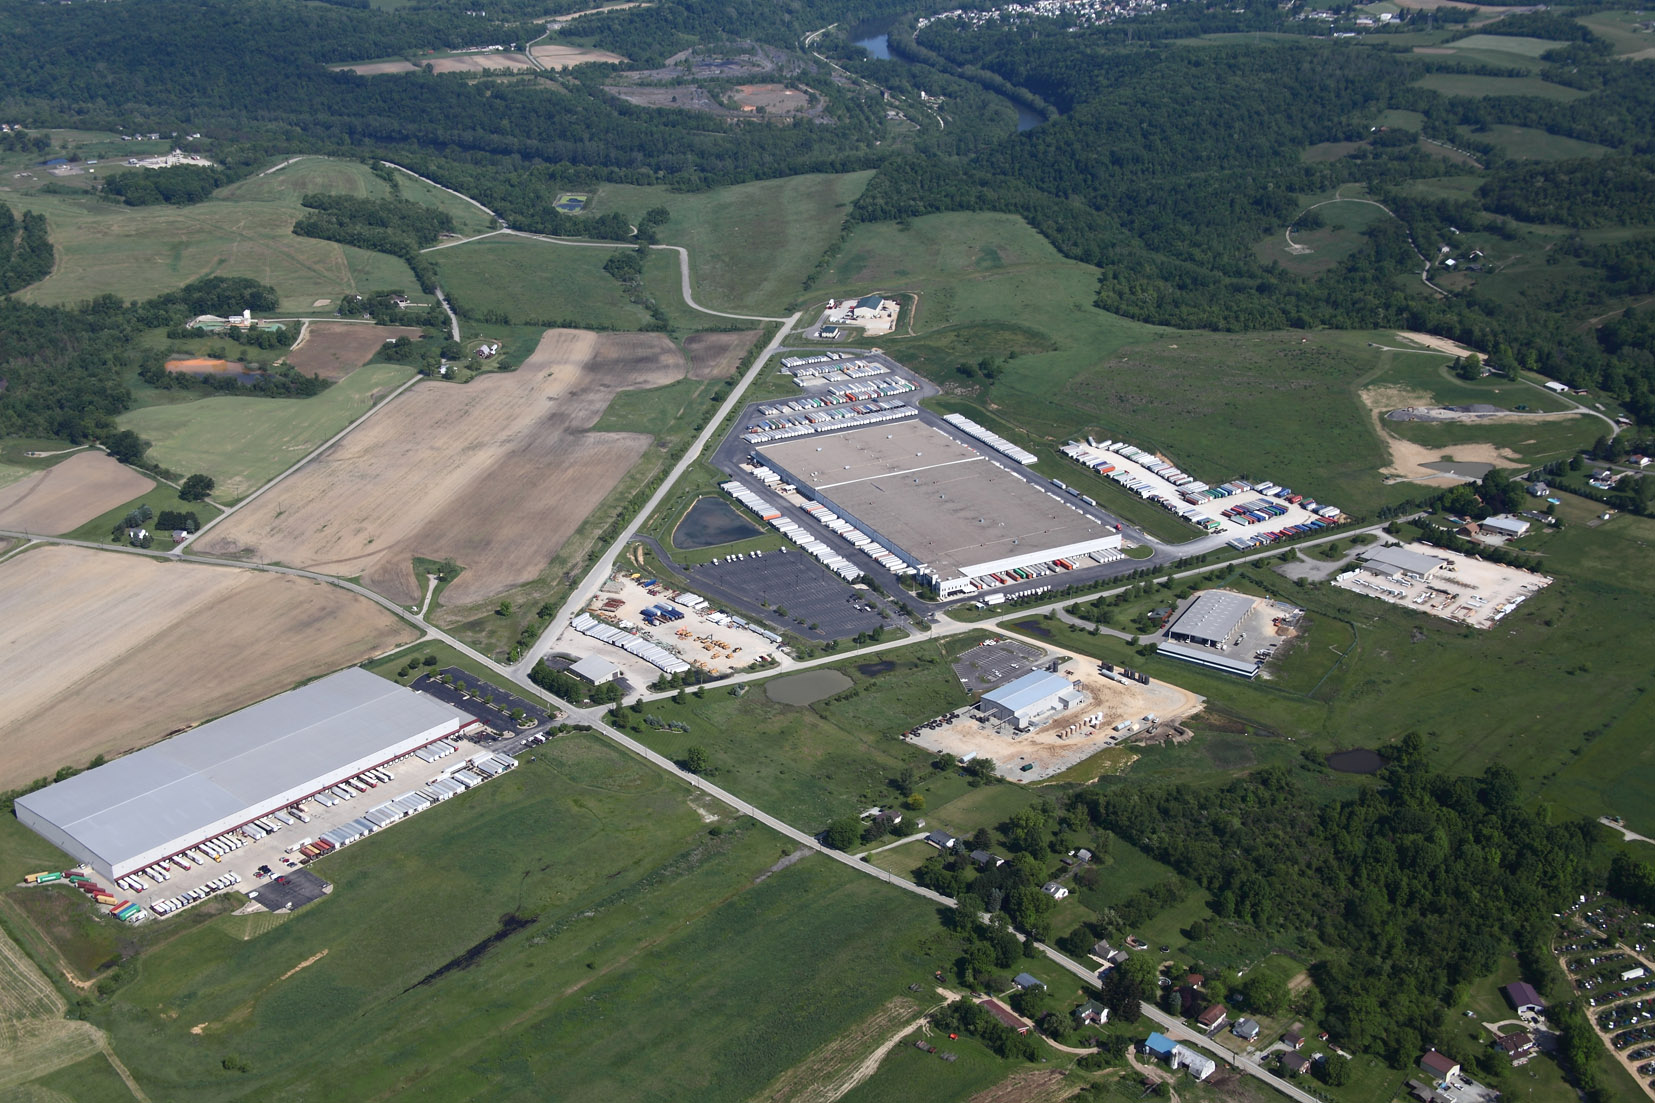 2007 Aerial I-70 Industrial Park